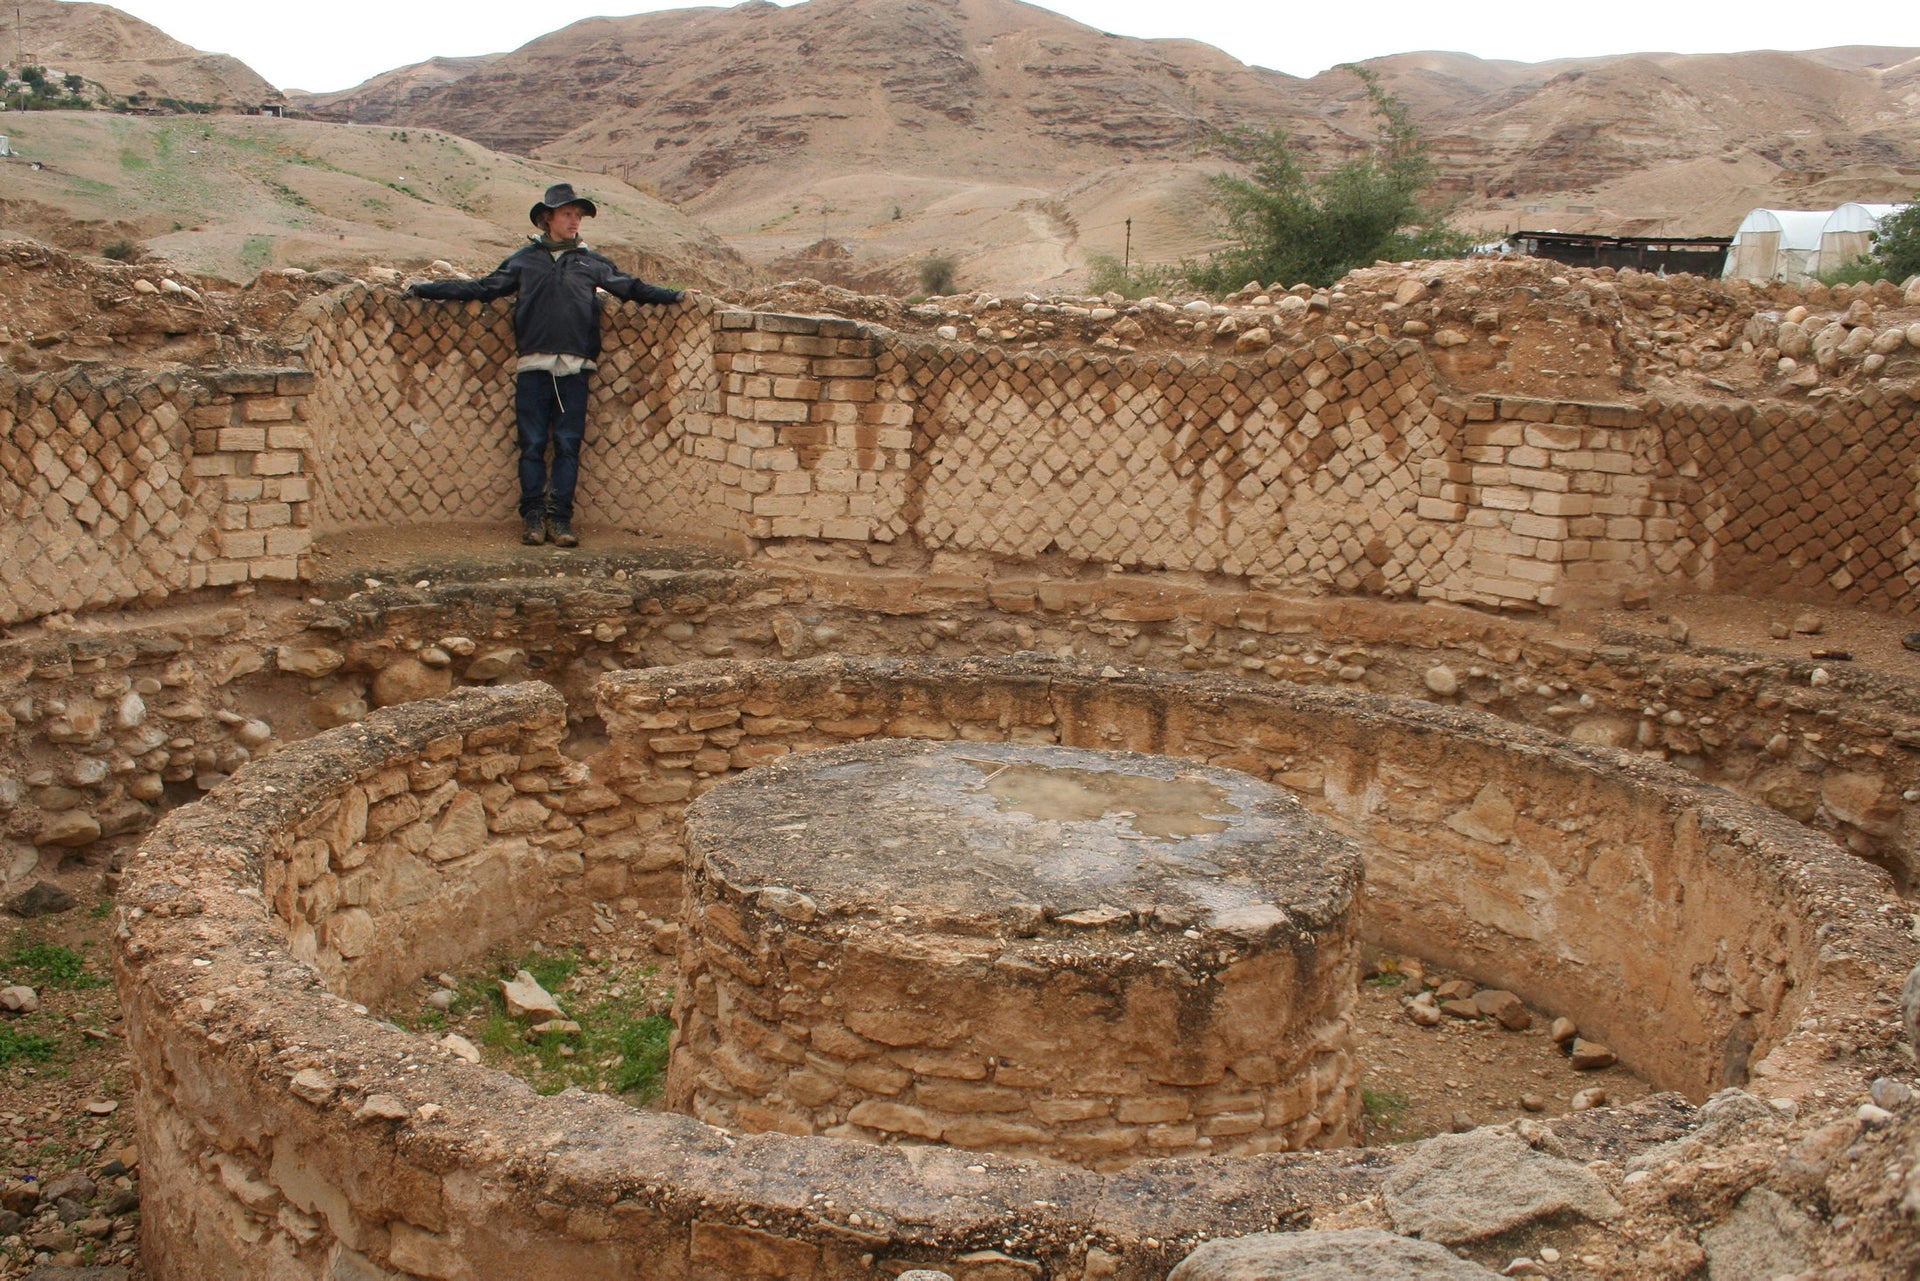 King Herod's palace in Jericho